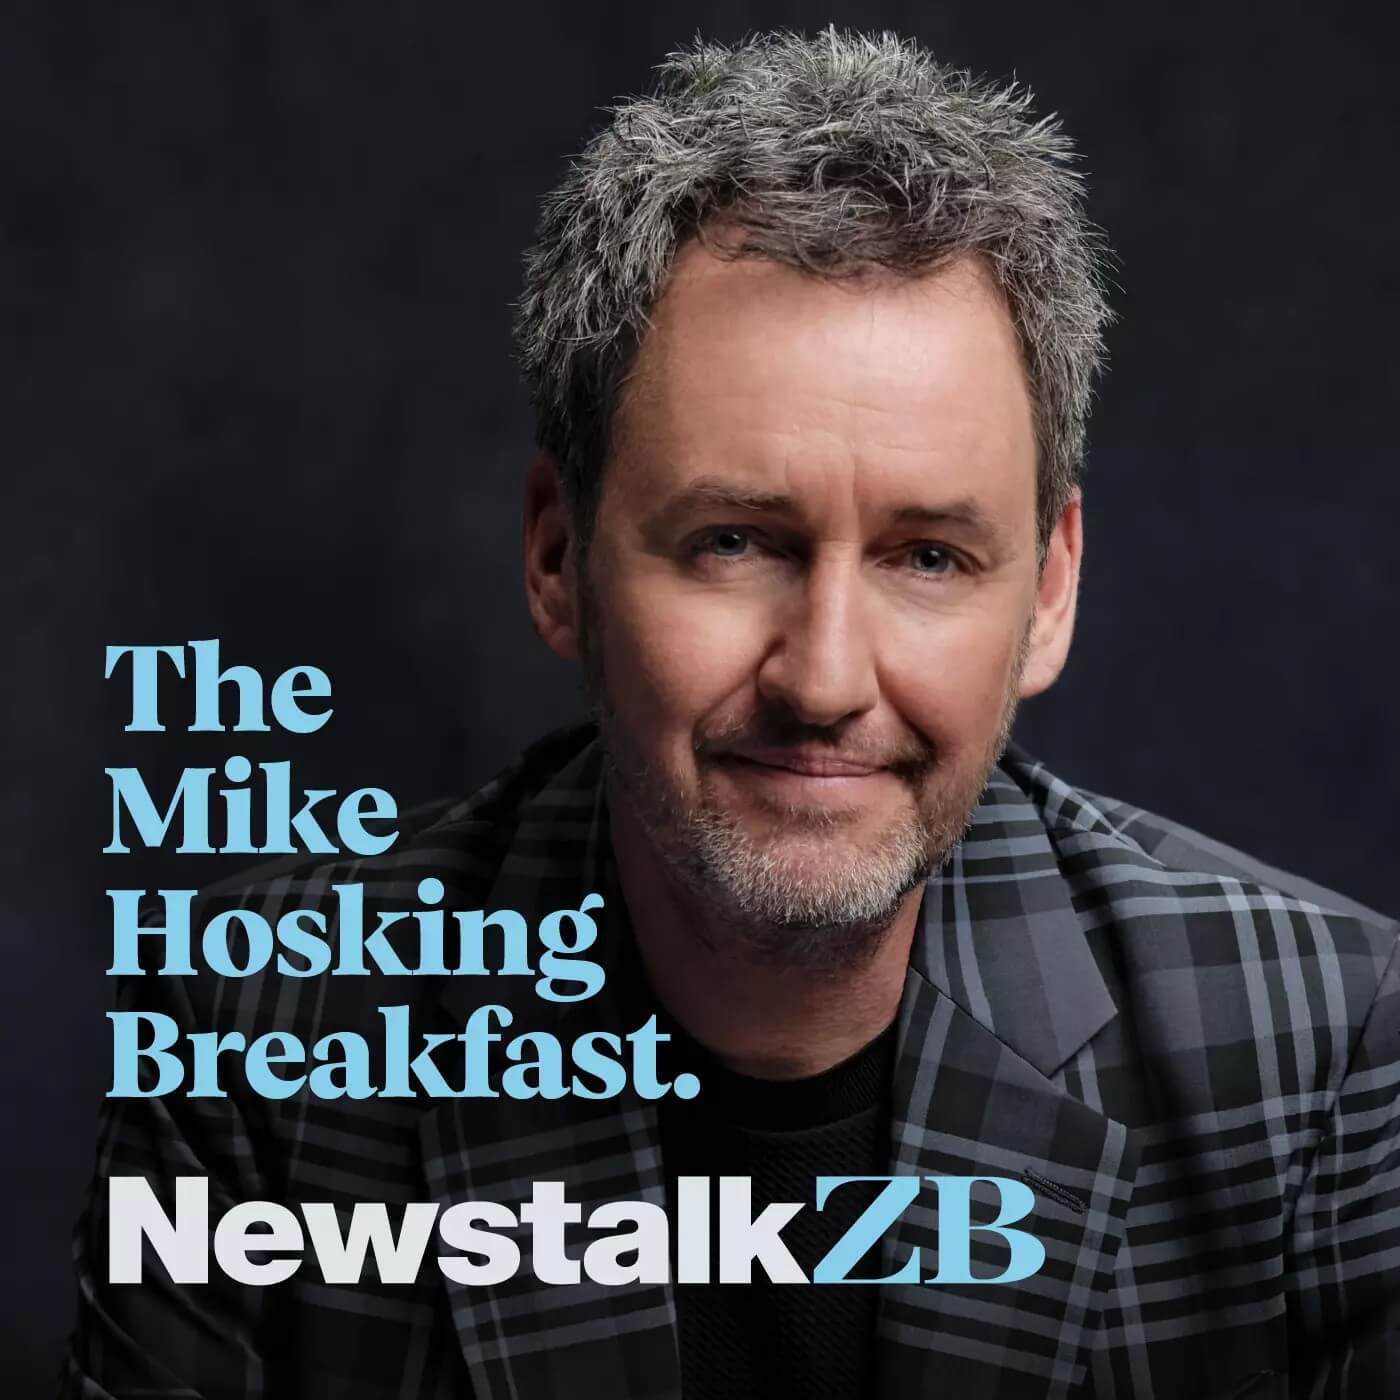 Radio interview with Mike Hosking